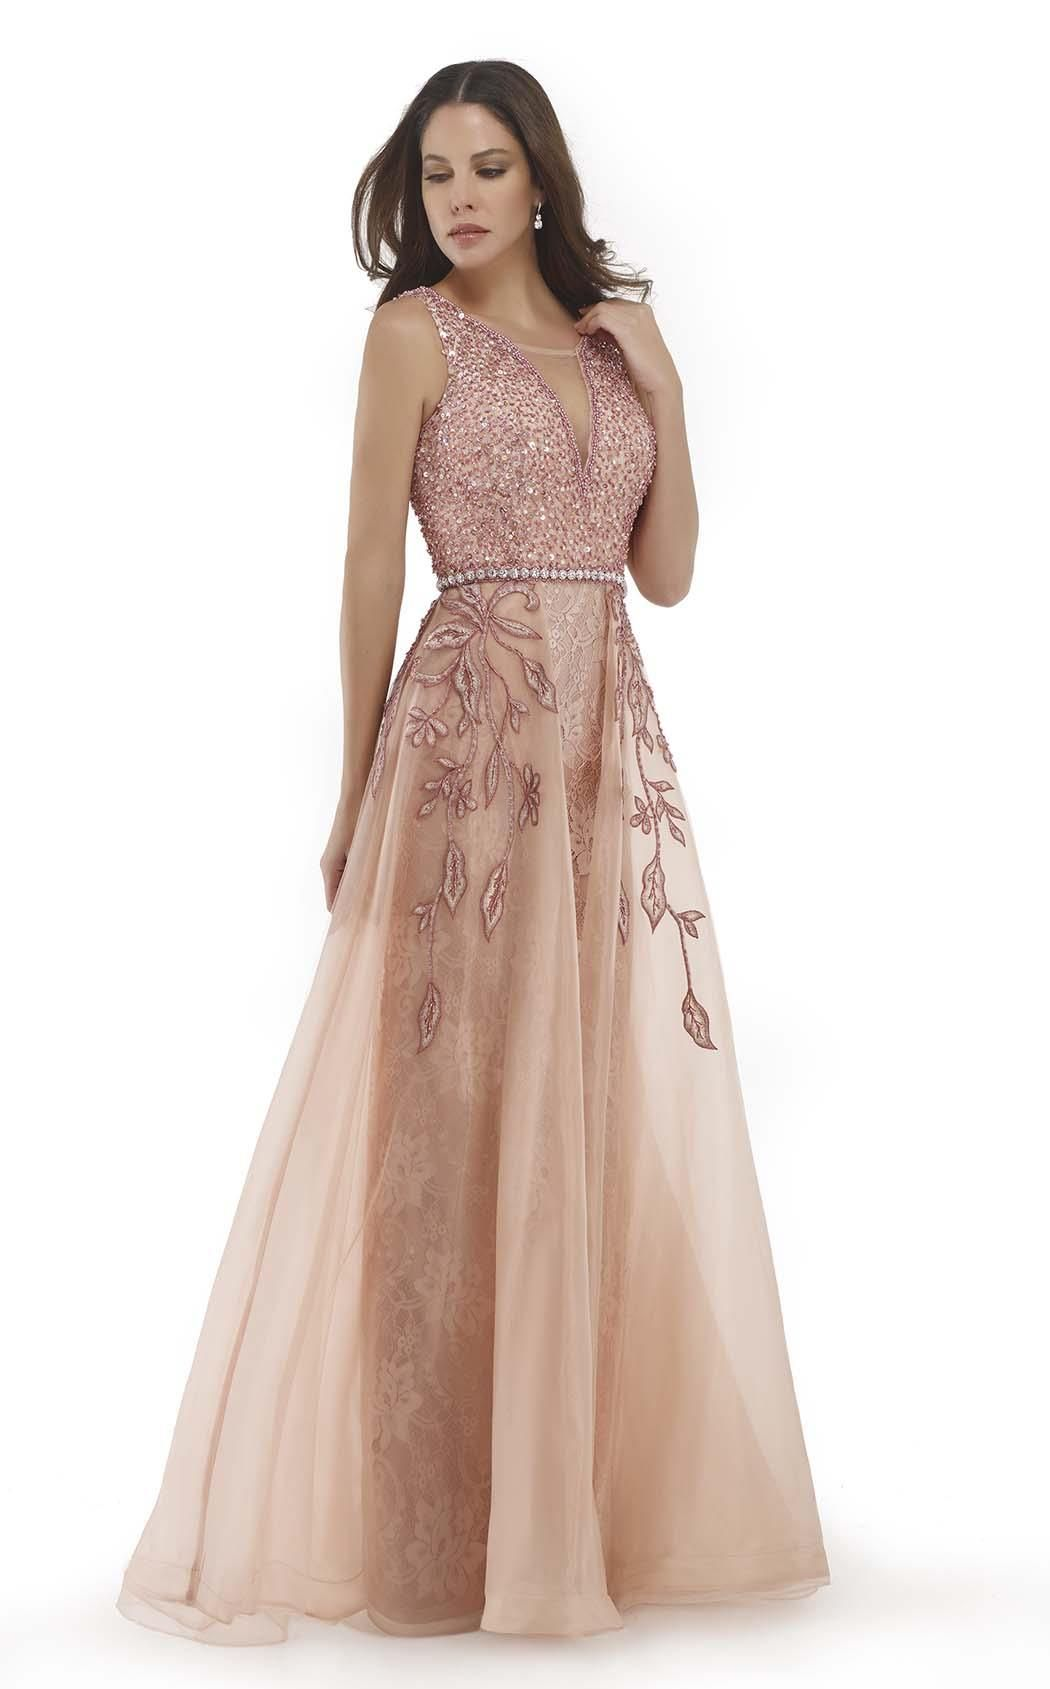 Morrell Maxie 15696 Romantic Lace Overlay And Gowns